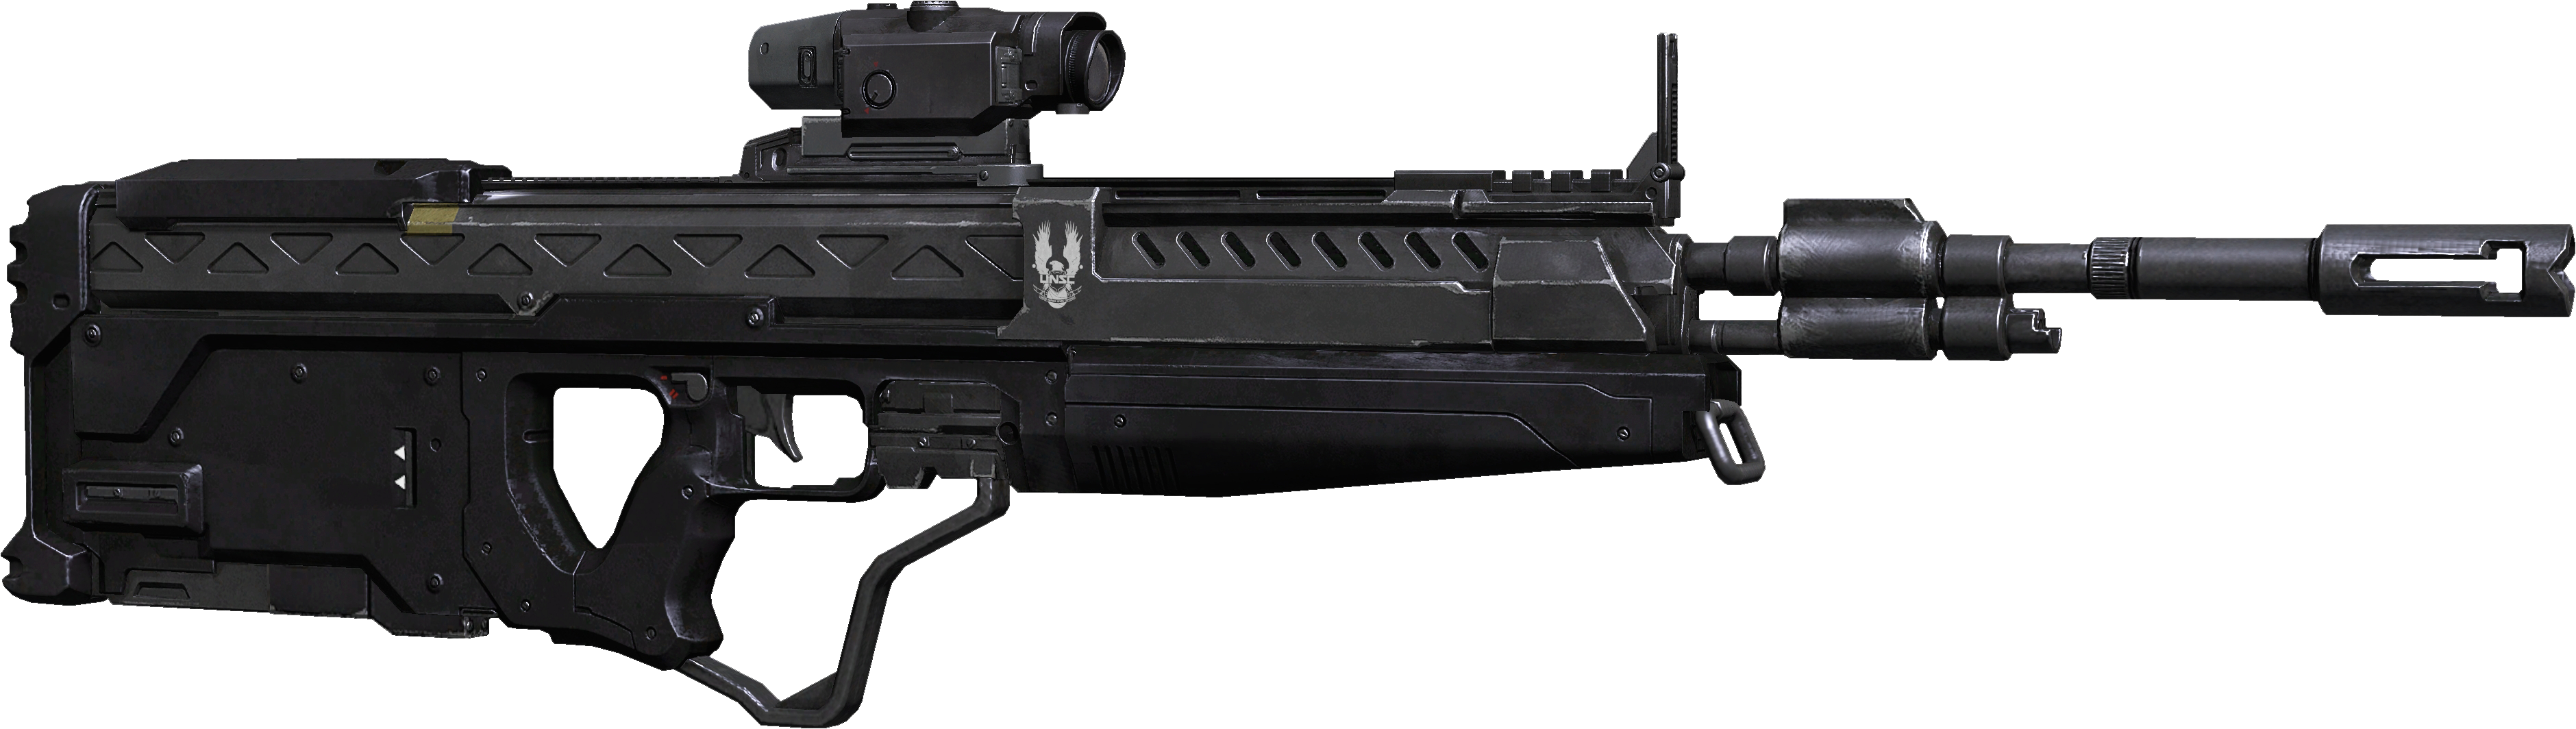 halo assault rifle png